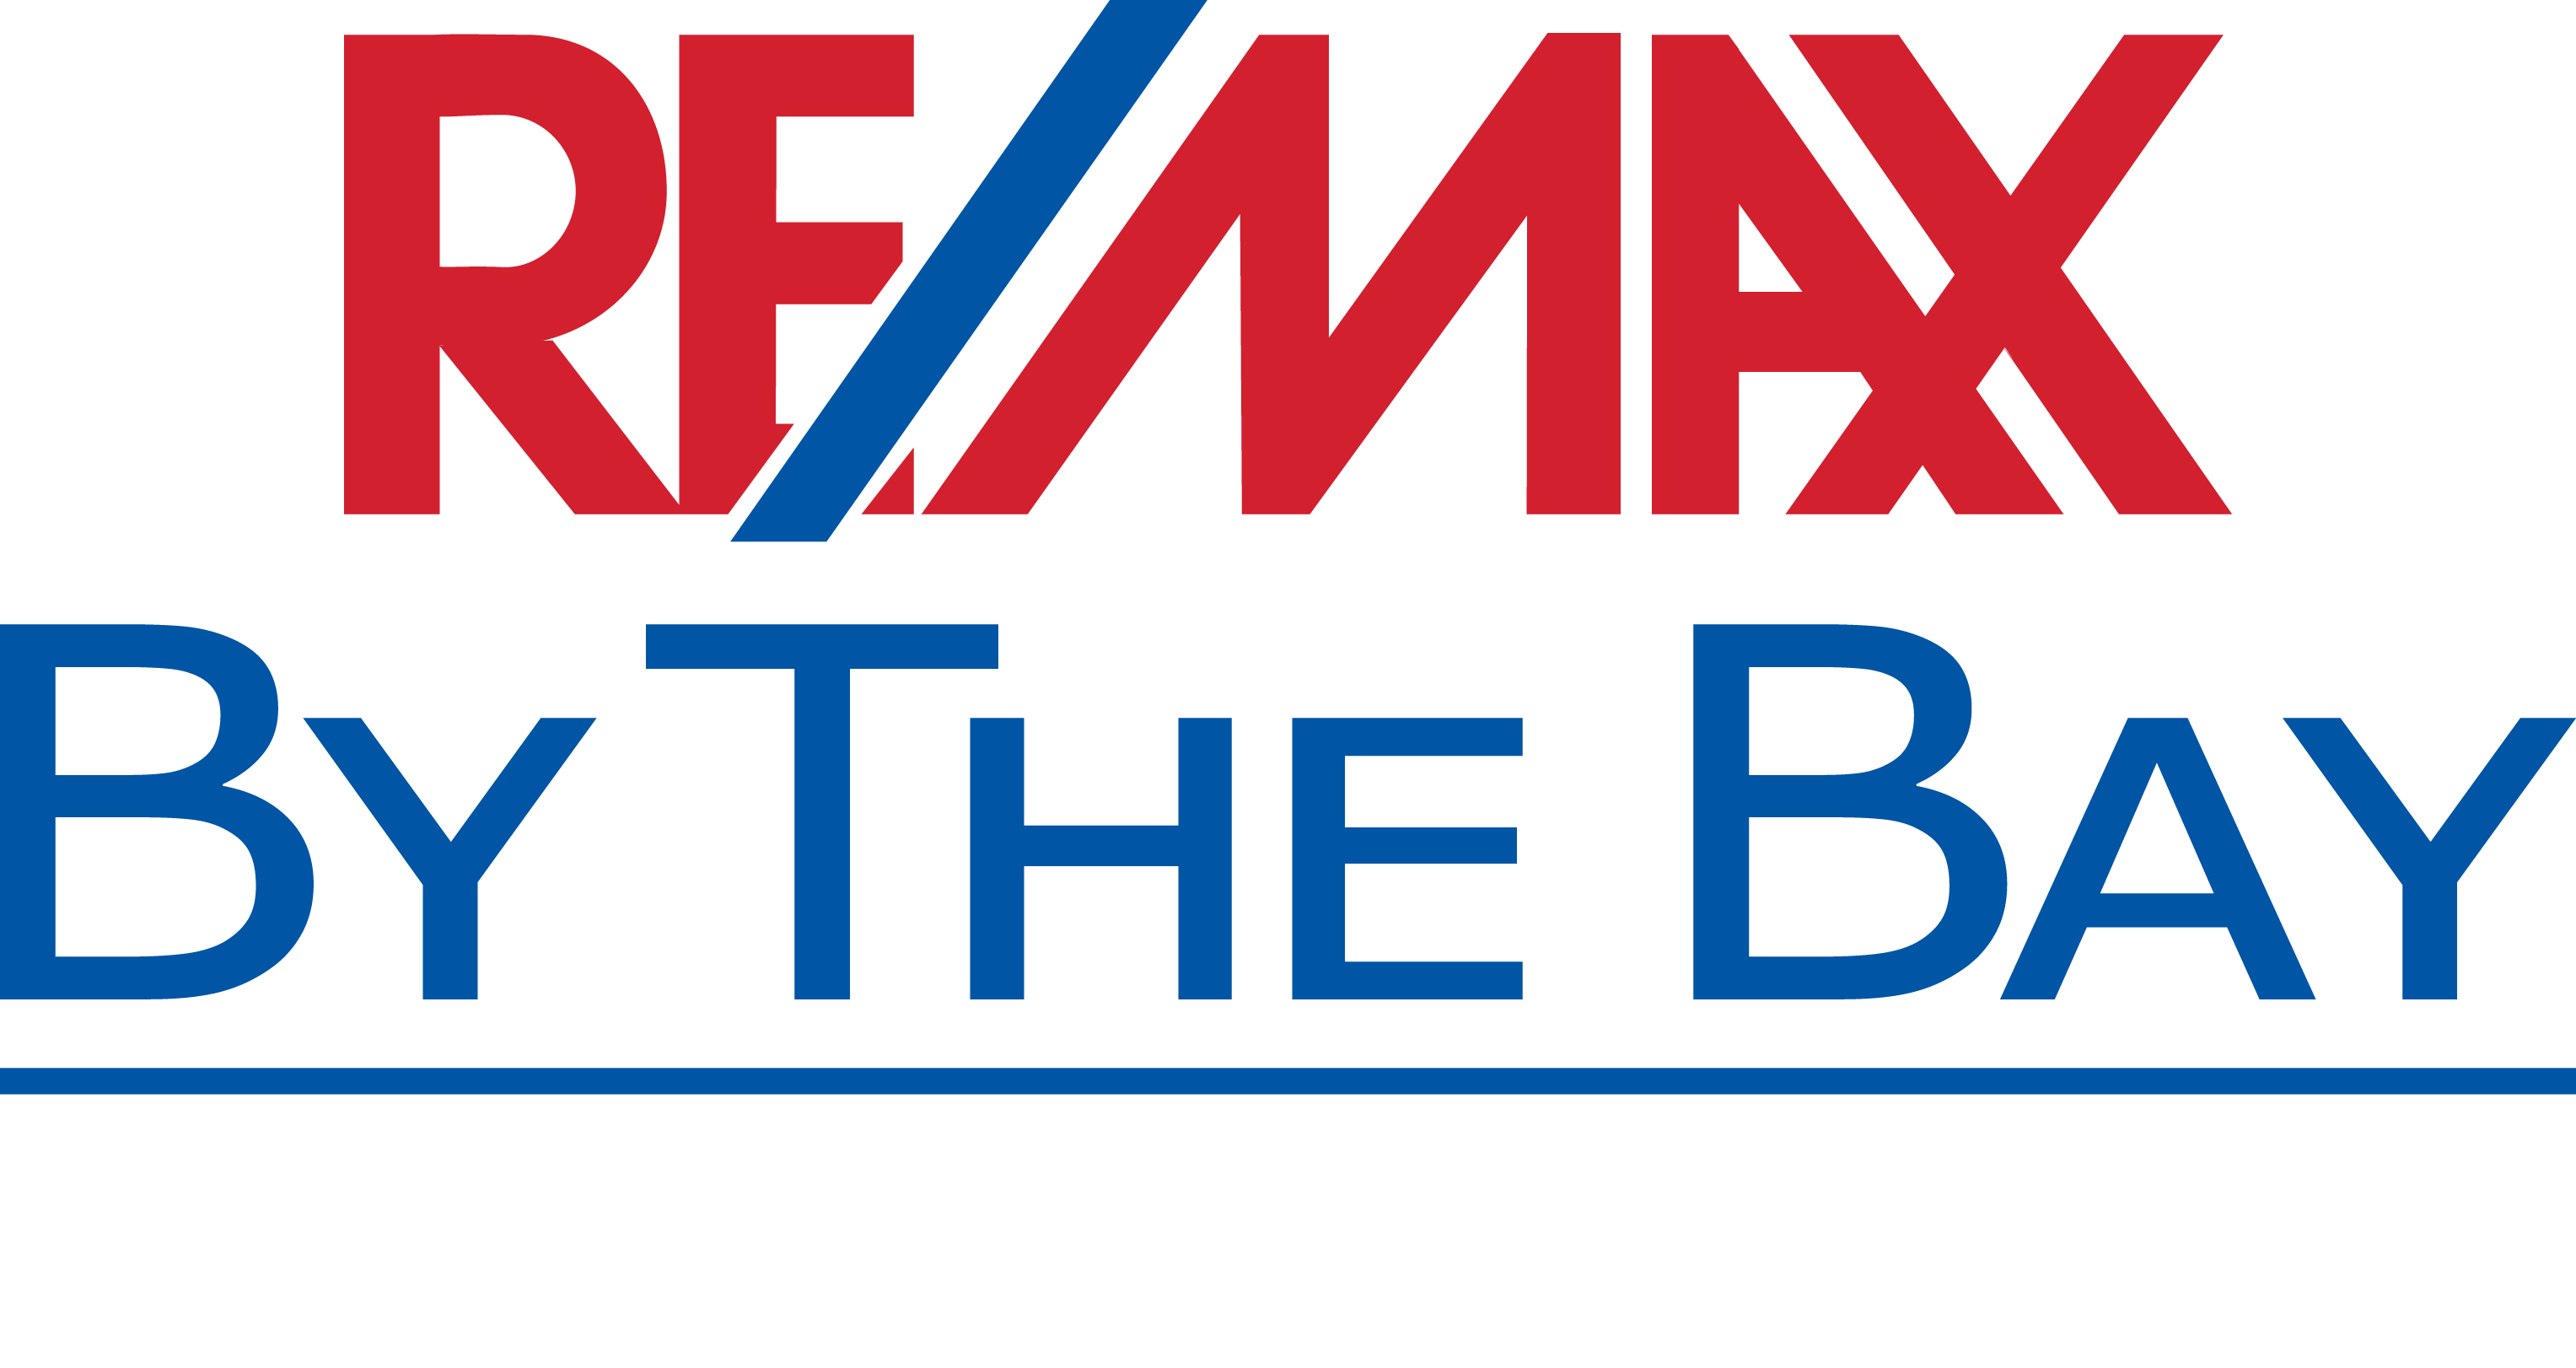 RBTB-Text-Only-Logo-2color.png